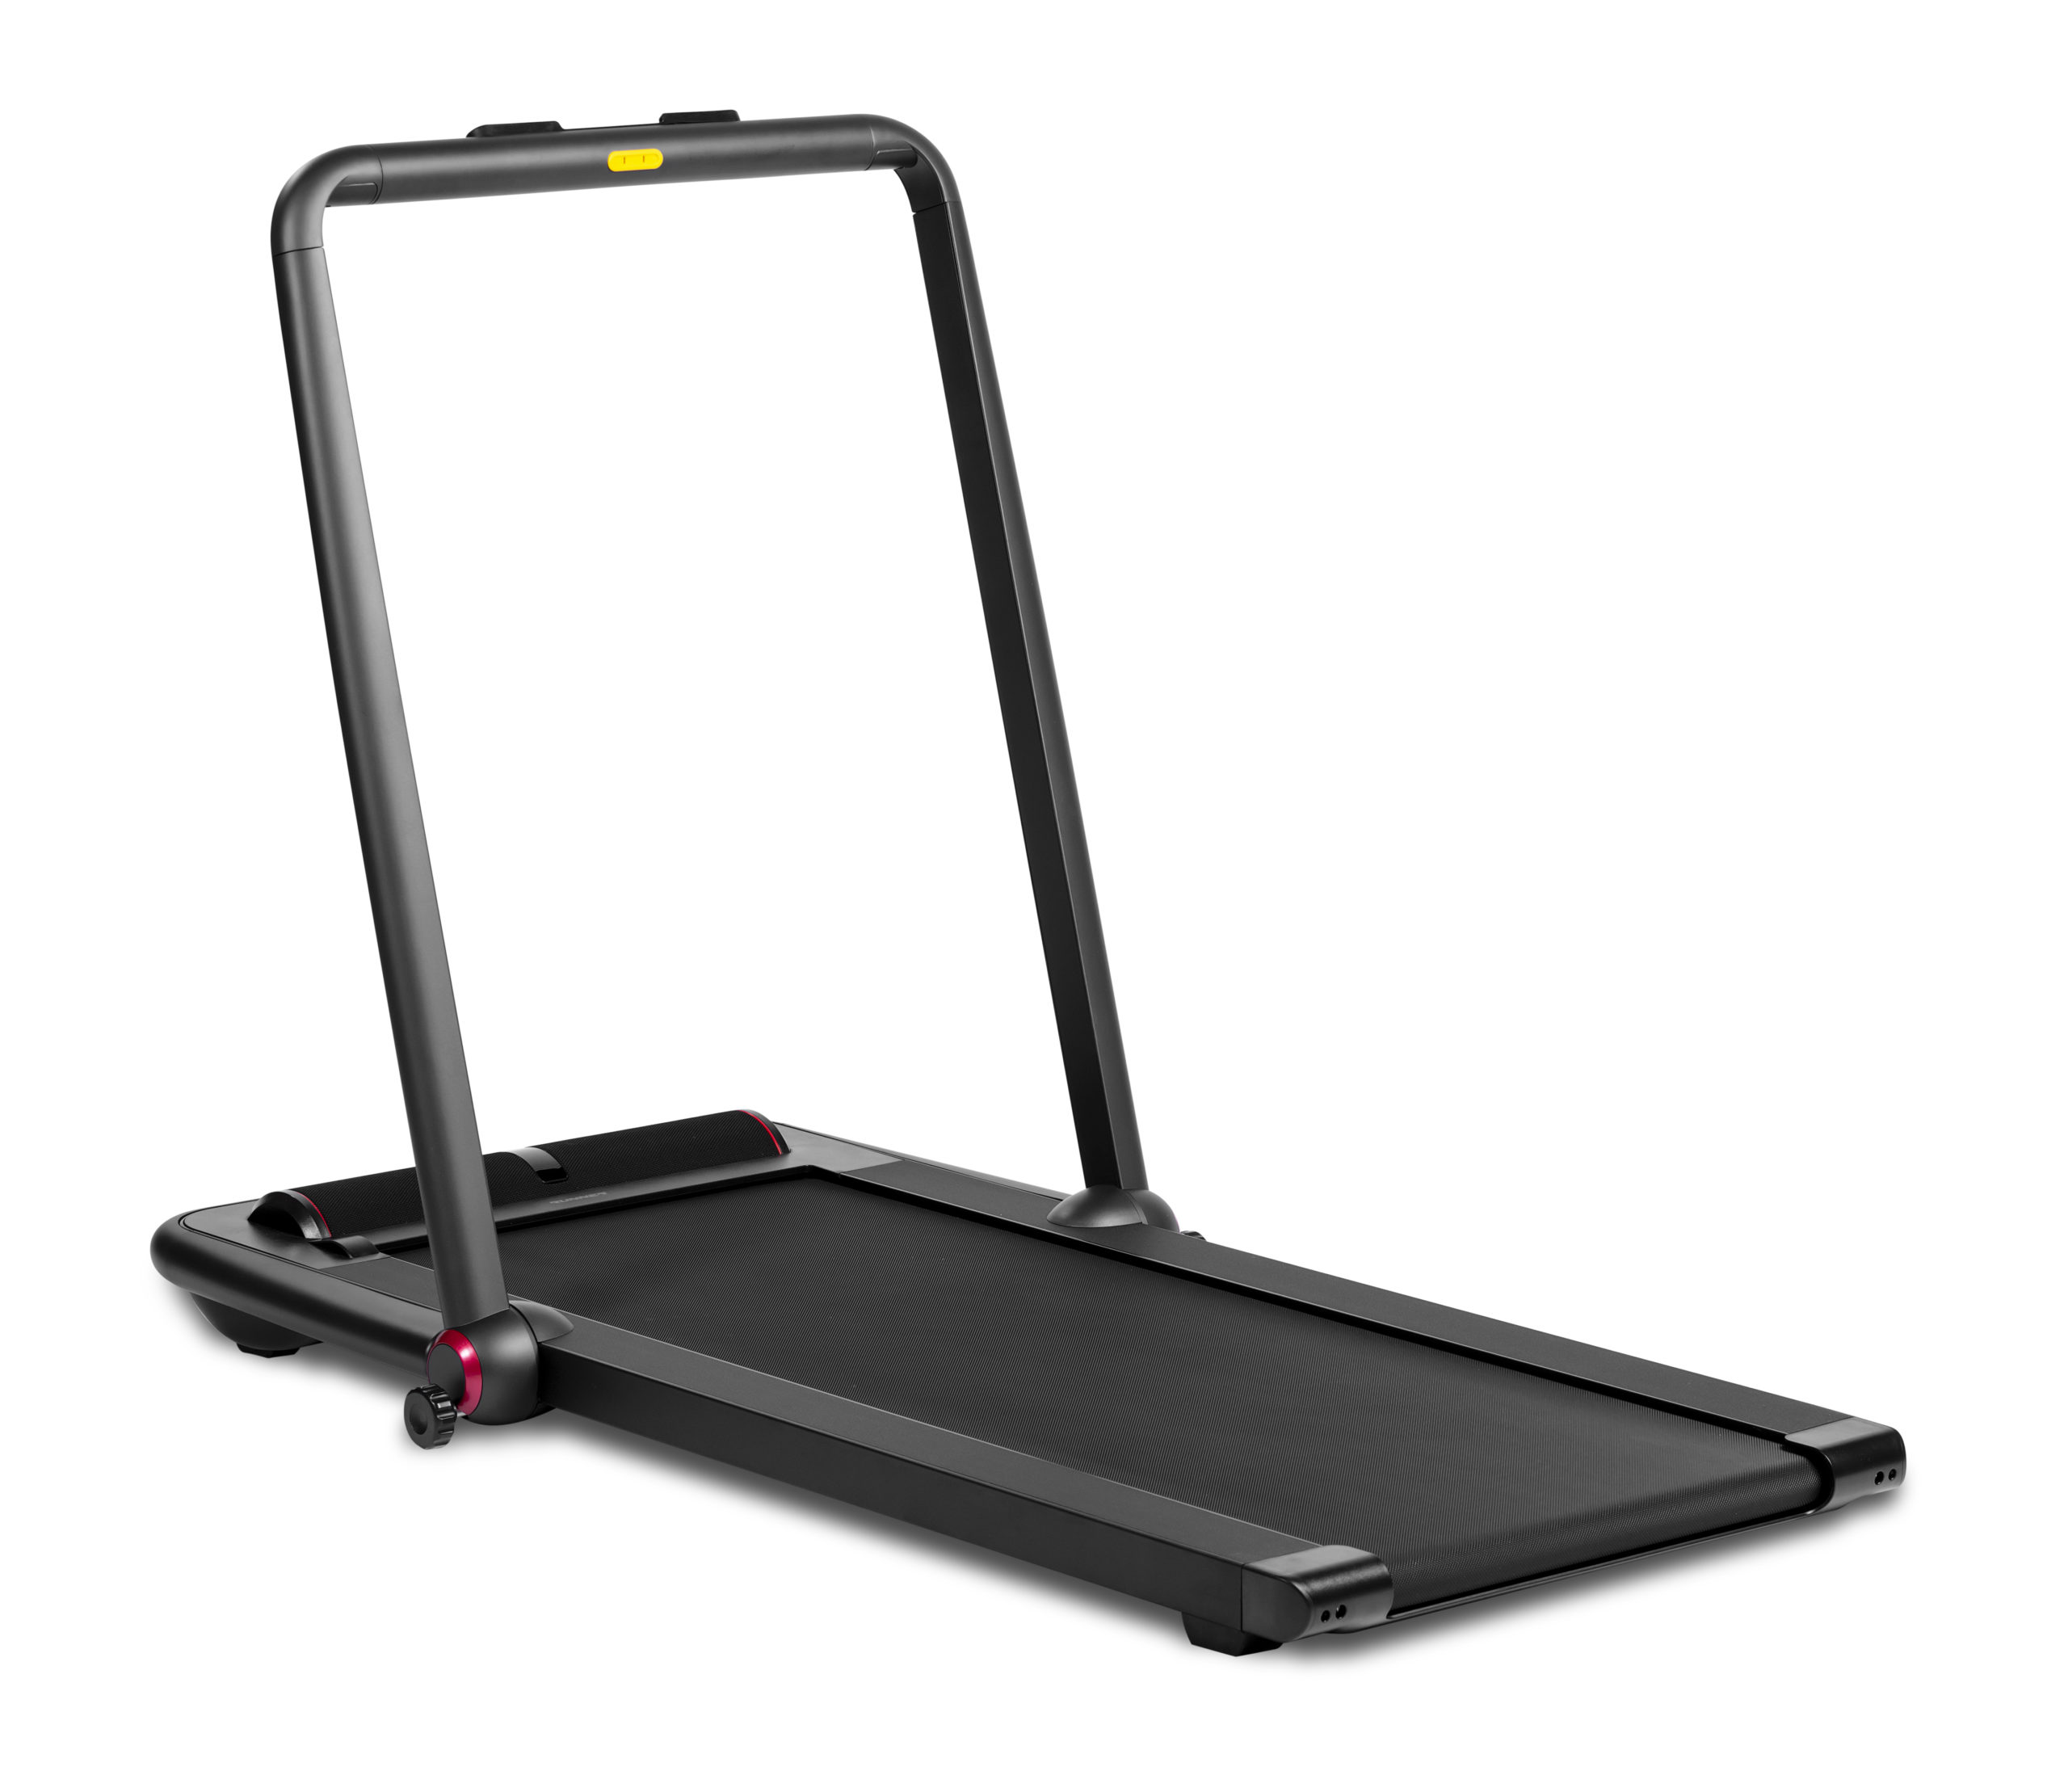 Flow Fitness Tabel Runner DTM200i loopband 1